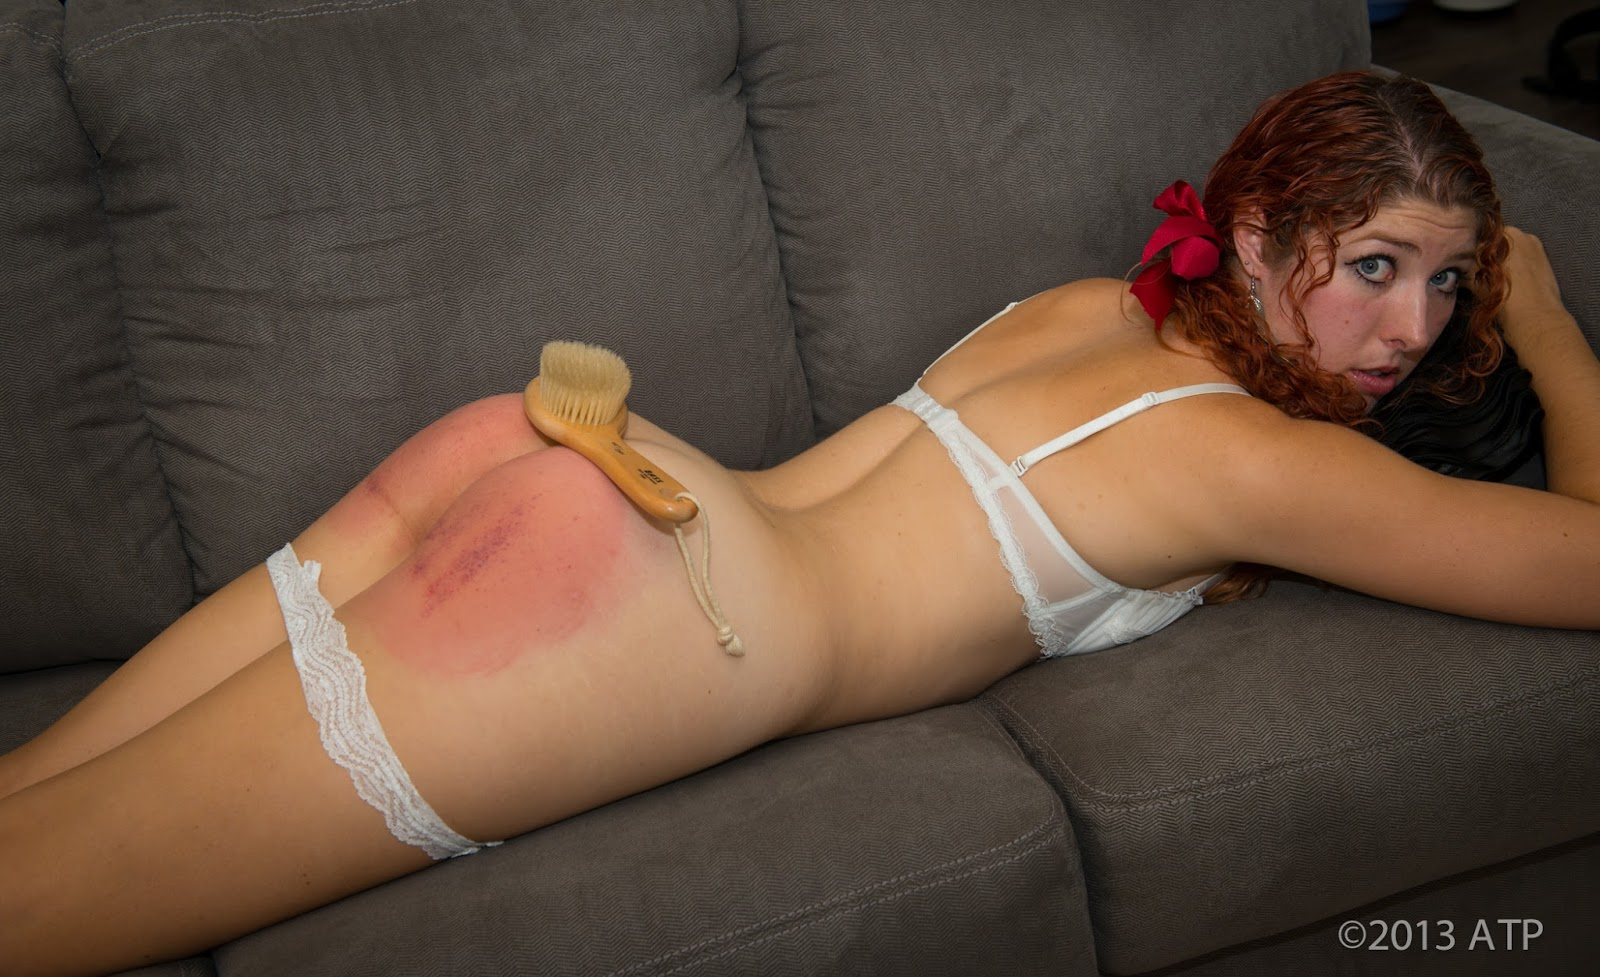 Useful busty blond spanks daughter with belt 4884 apologise, but